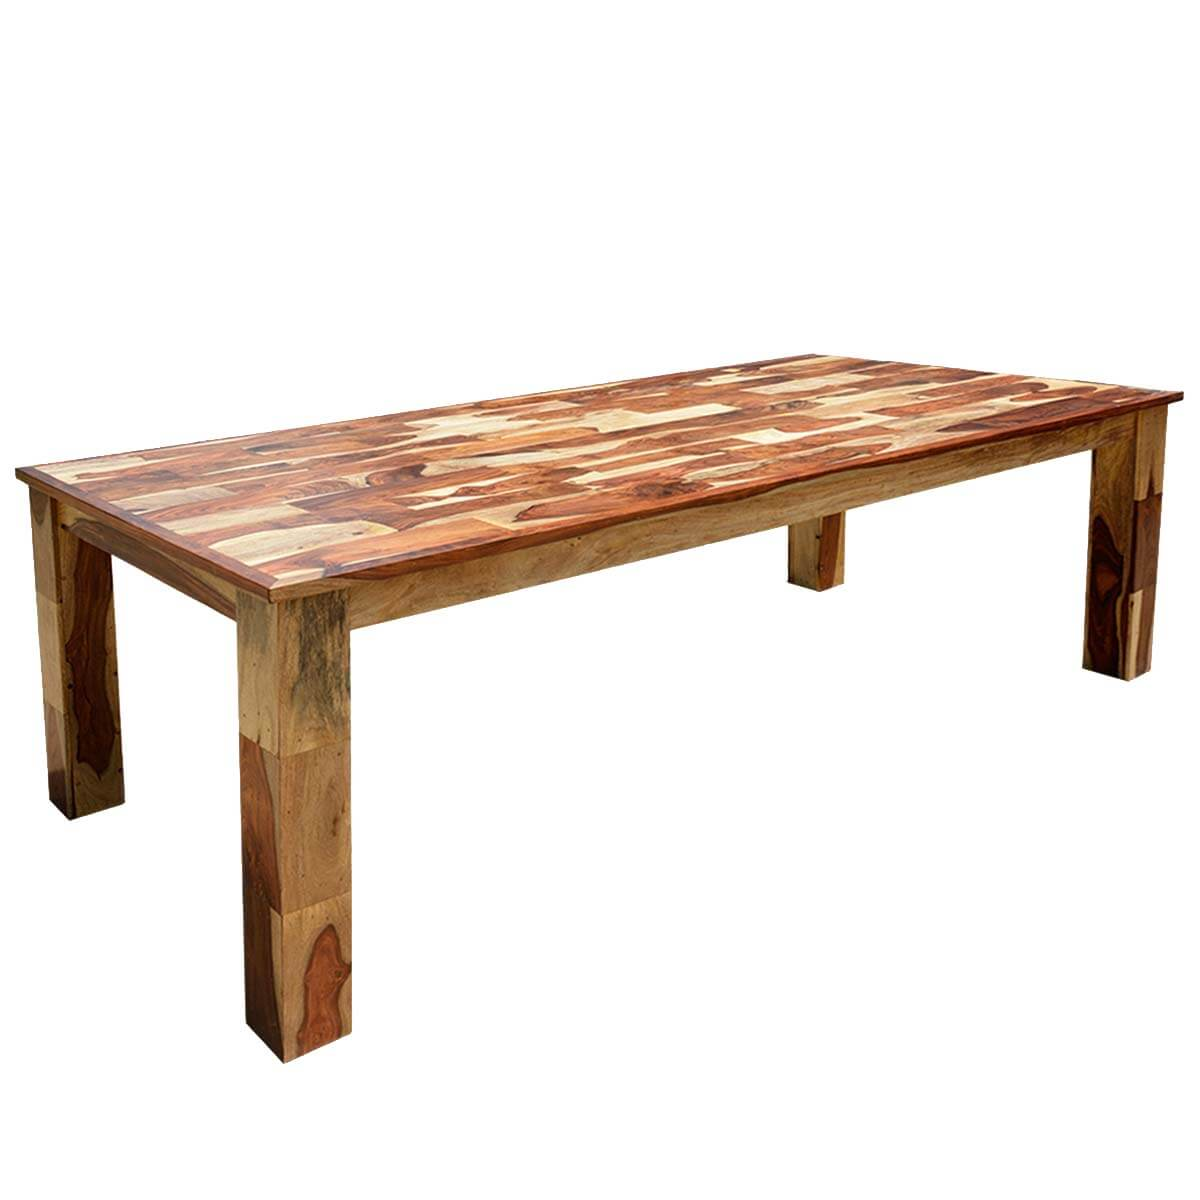 Cariboo rustic solid wood large rectangular dining table for Large dining table